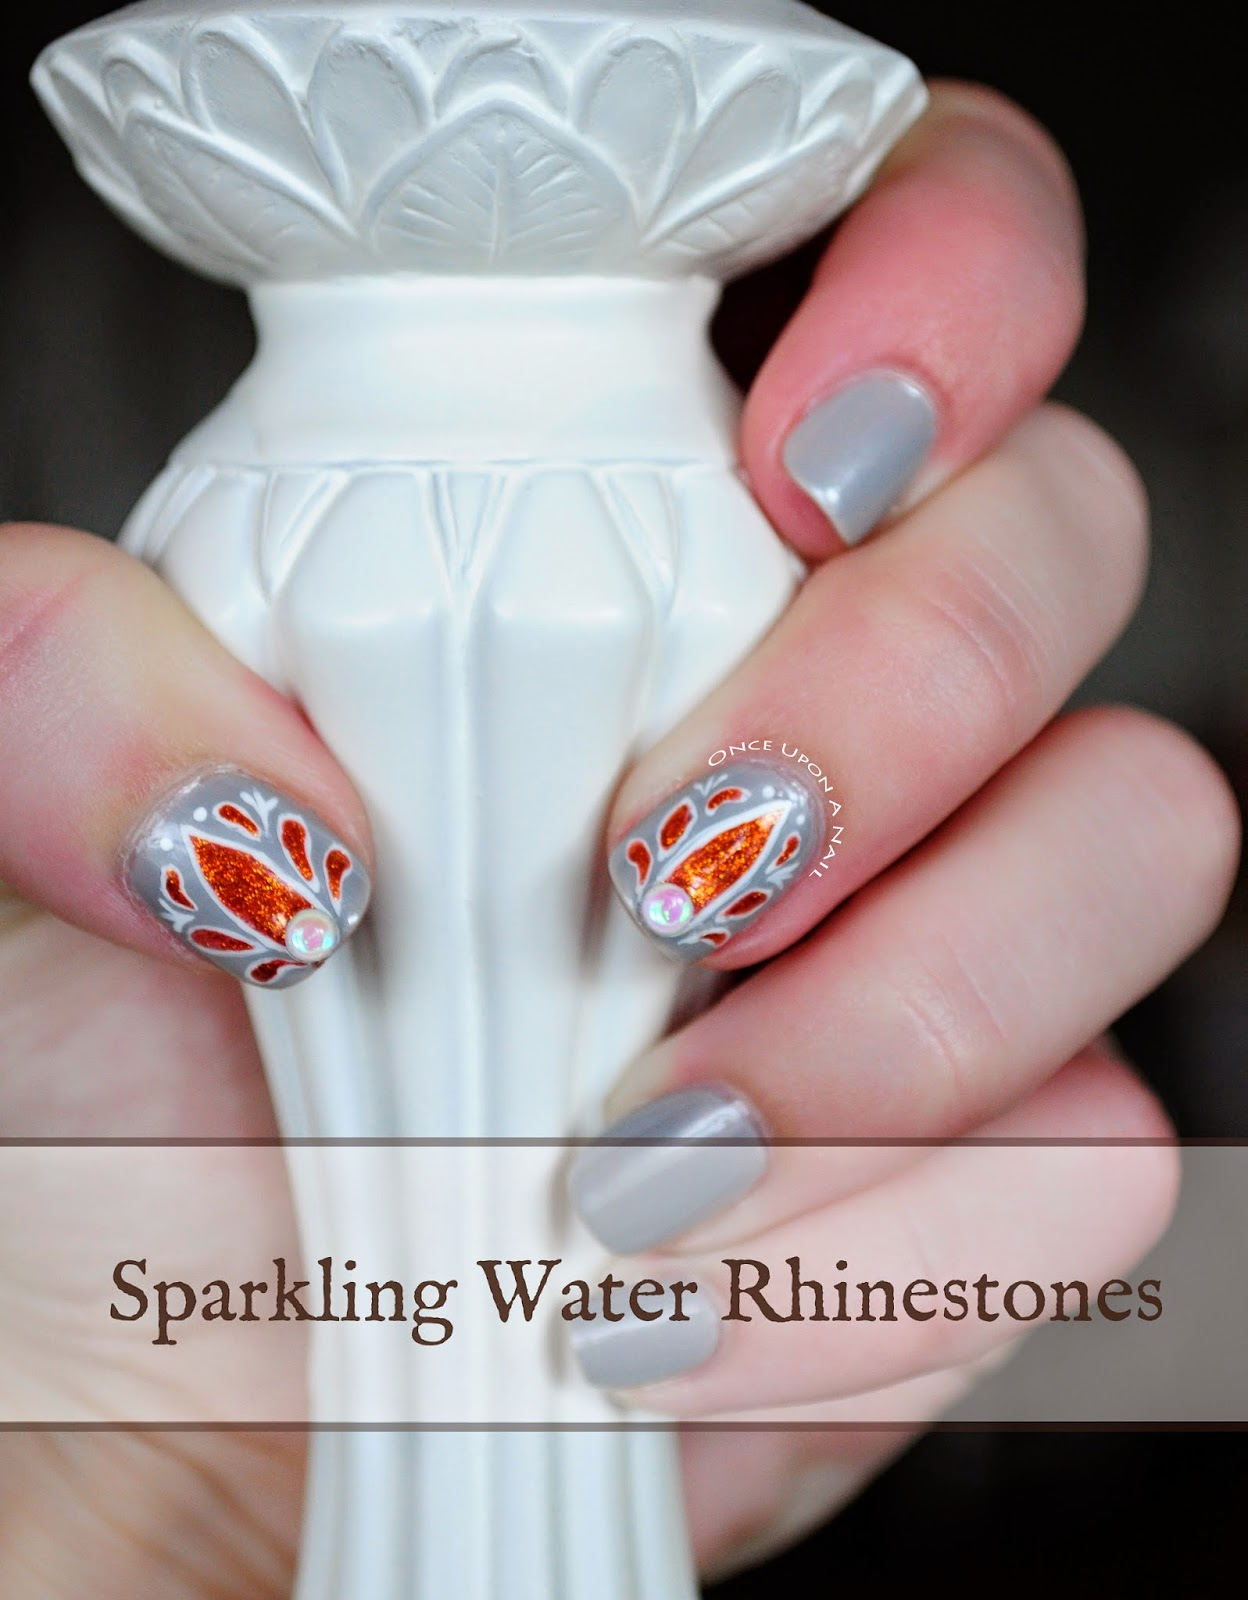 http://onceuponnails.blogspot.com/2014/11/review-rhinestones.html